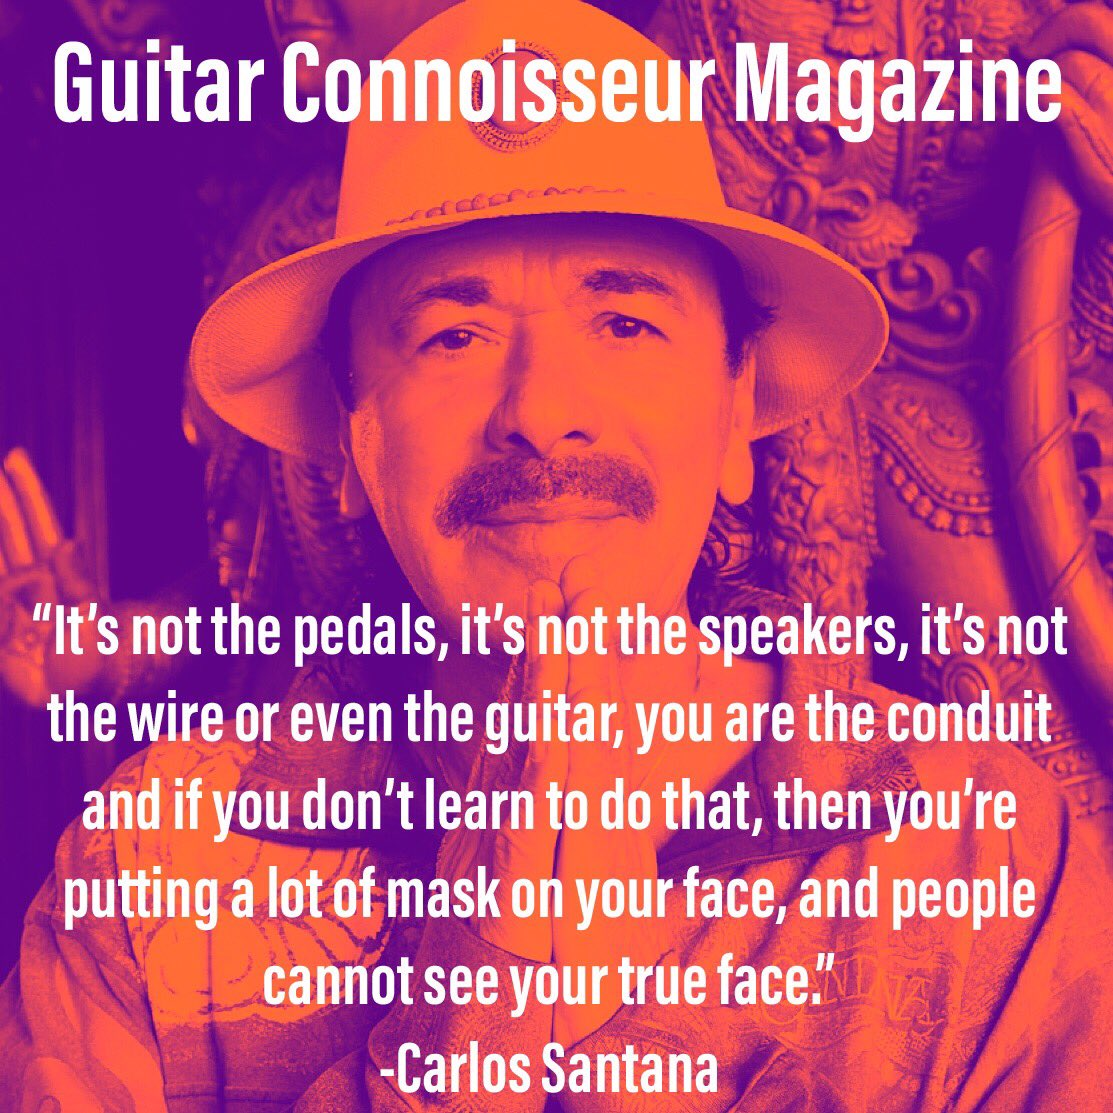 Love this quote from @SantanaCarlos #guitarconnoisseur https://t.co/8AHucGdZeL